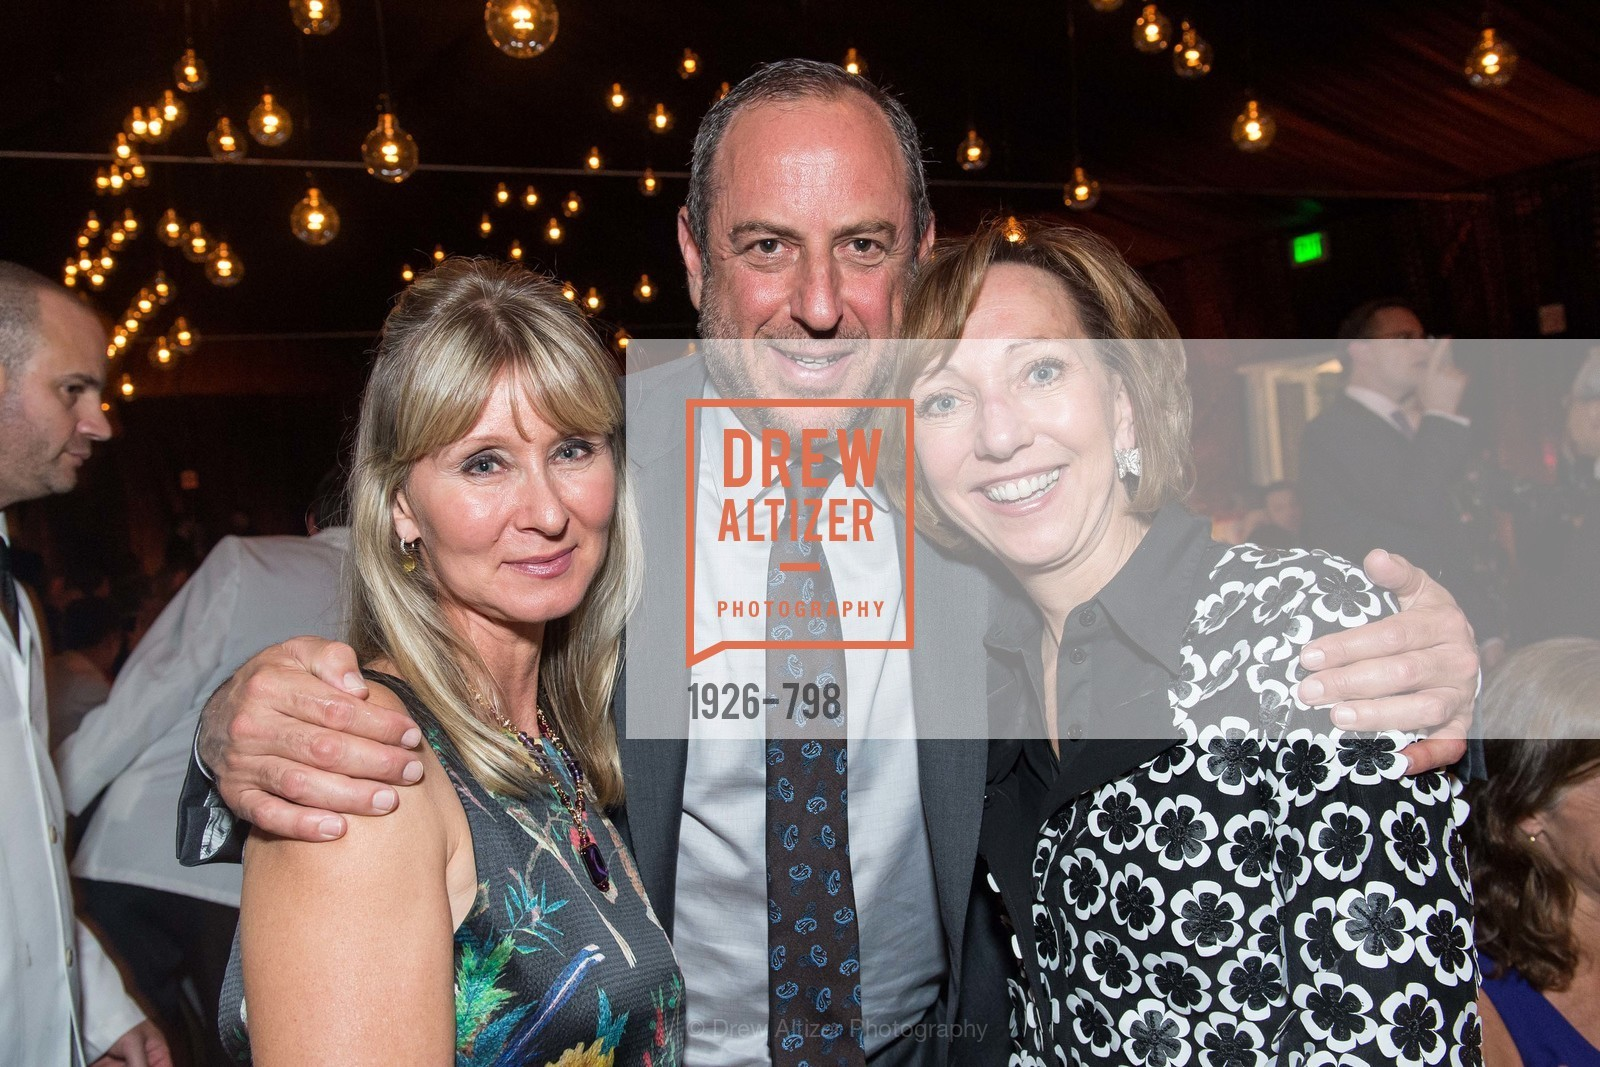 Ron Zeff, Janice Barger, CALIFORNIA ACADEMY OF SCIENCES - Big Bang Gala 2015, US, April 24th, 2015,Drew Altizer, Drew Altizer Photography, full-service event agency, private events, San Francisco photographer, photographer California